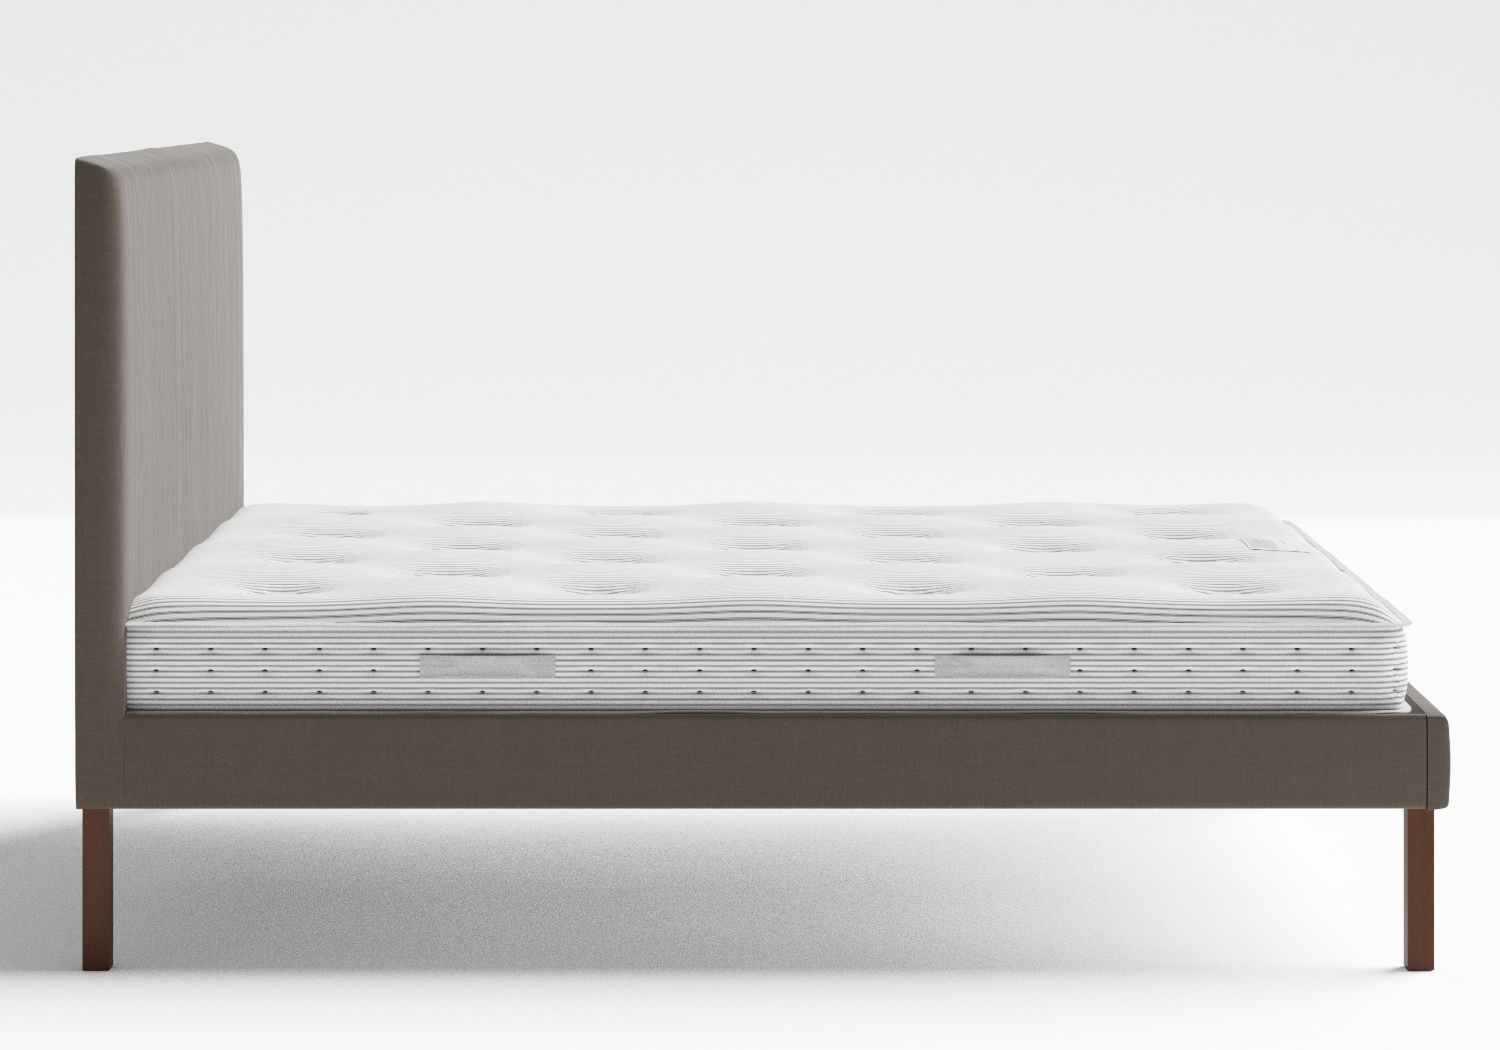 Misaki Upholstered Bed in Grey fabric shown with Juno 1 mattress